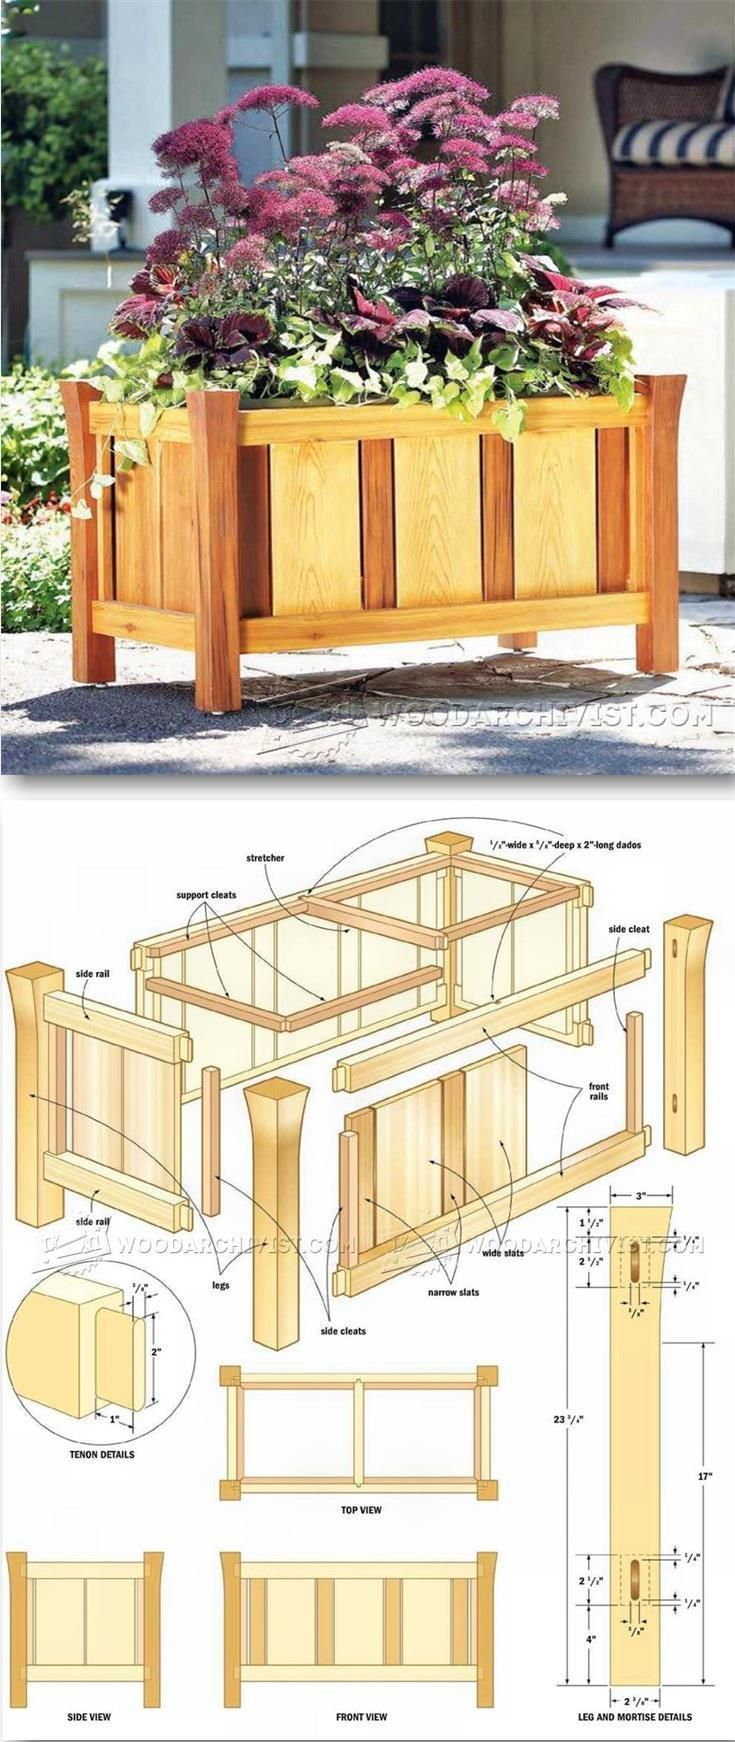 WoodArchivist.com | Woodworking DIY Plans | Pinterest | Woodworking ...